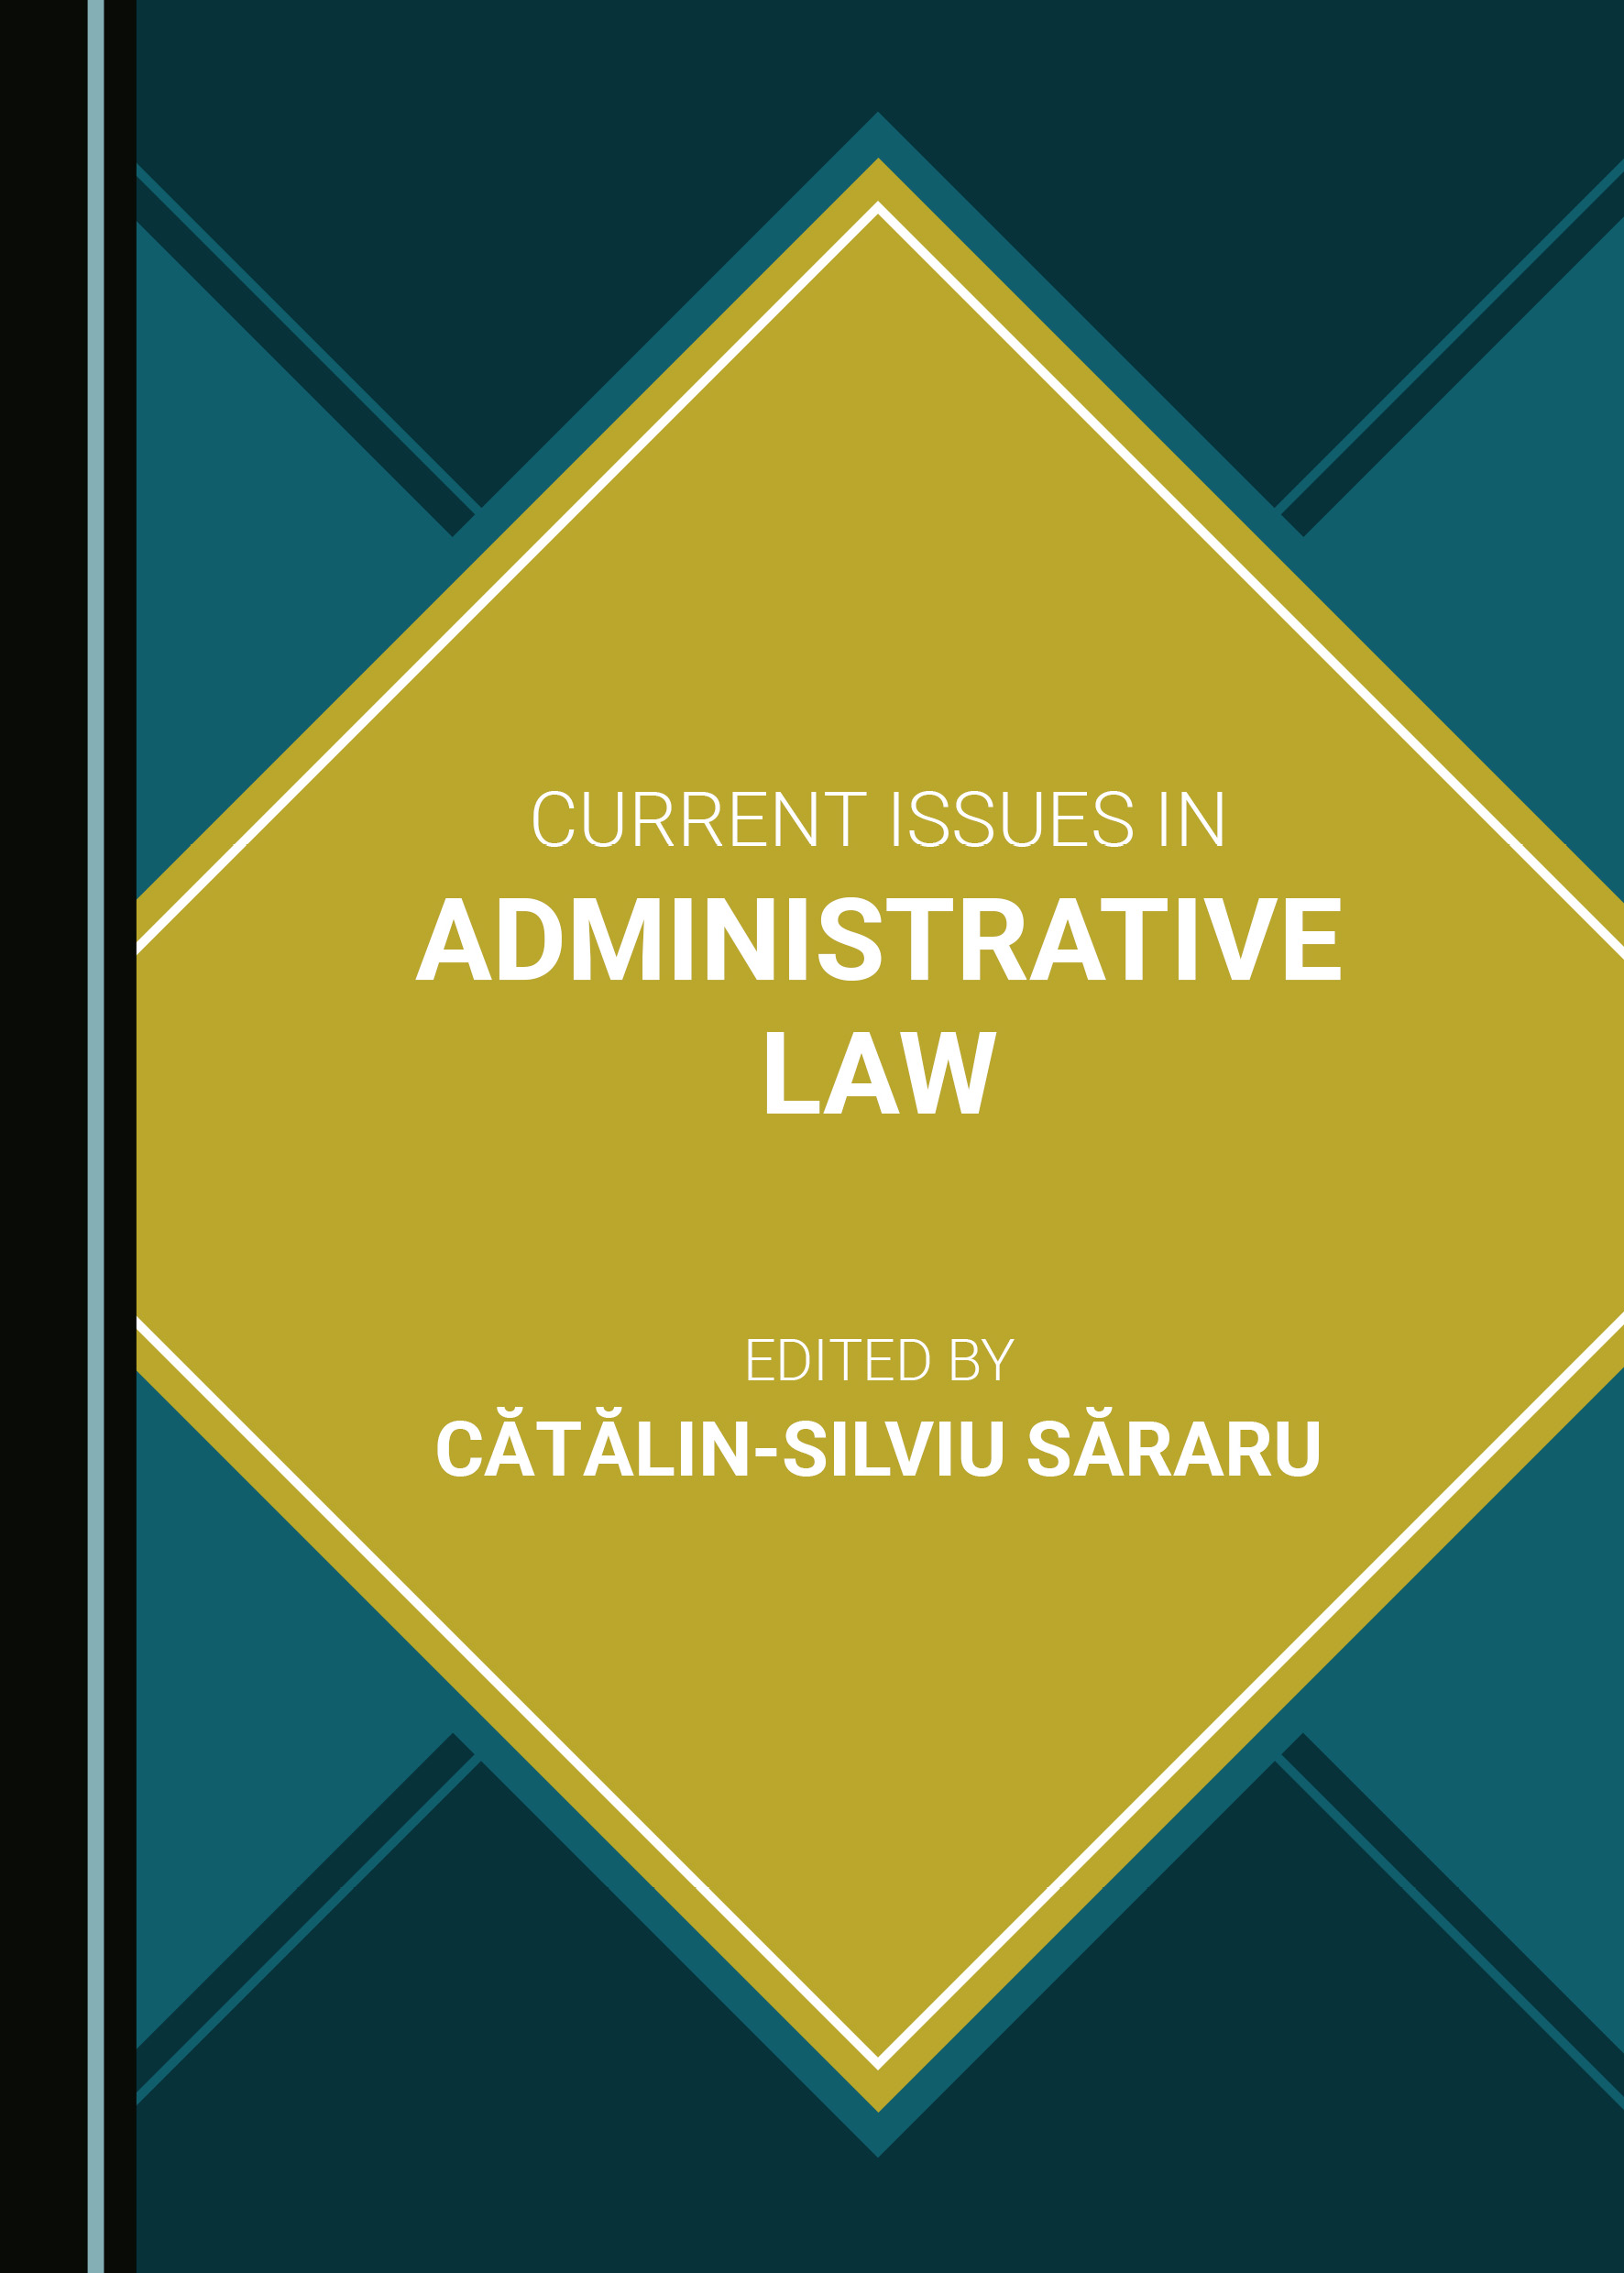 Current Issues in Administrative Law